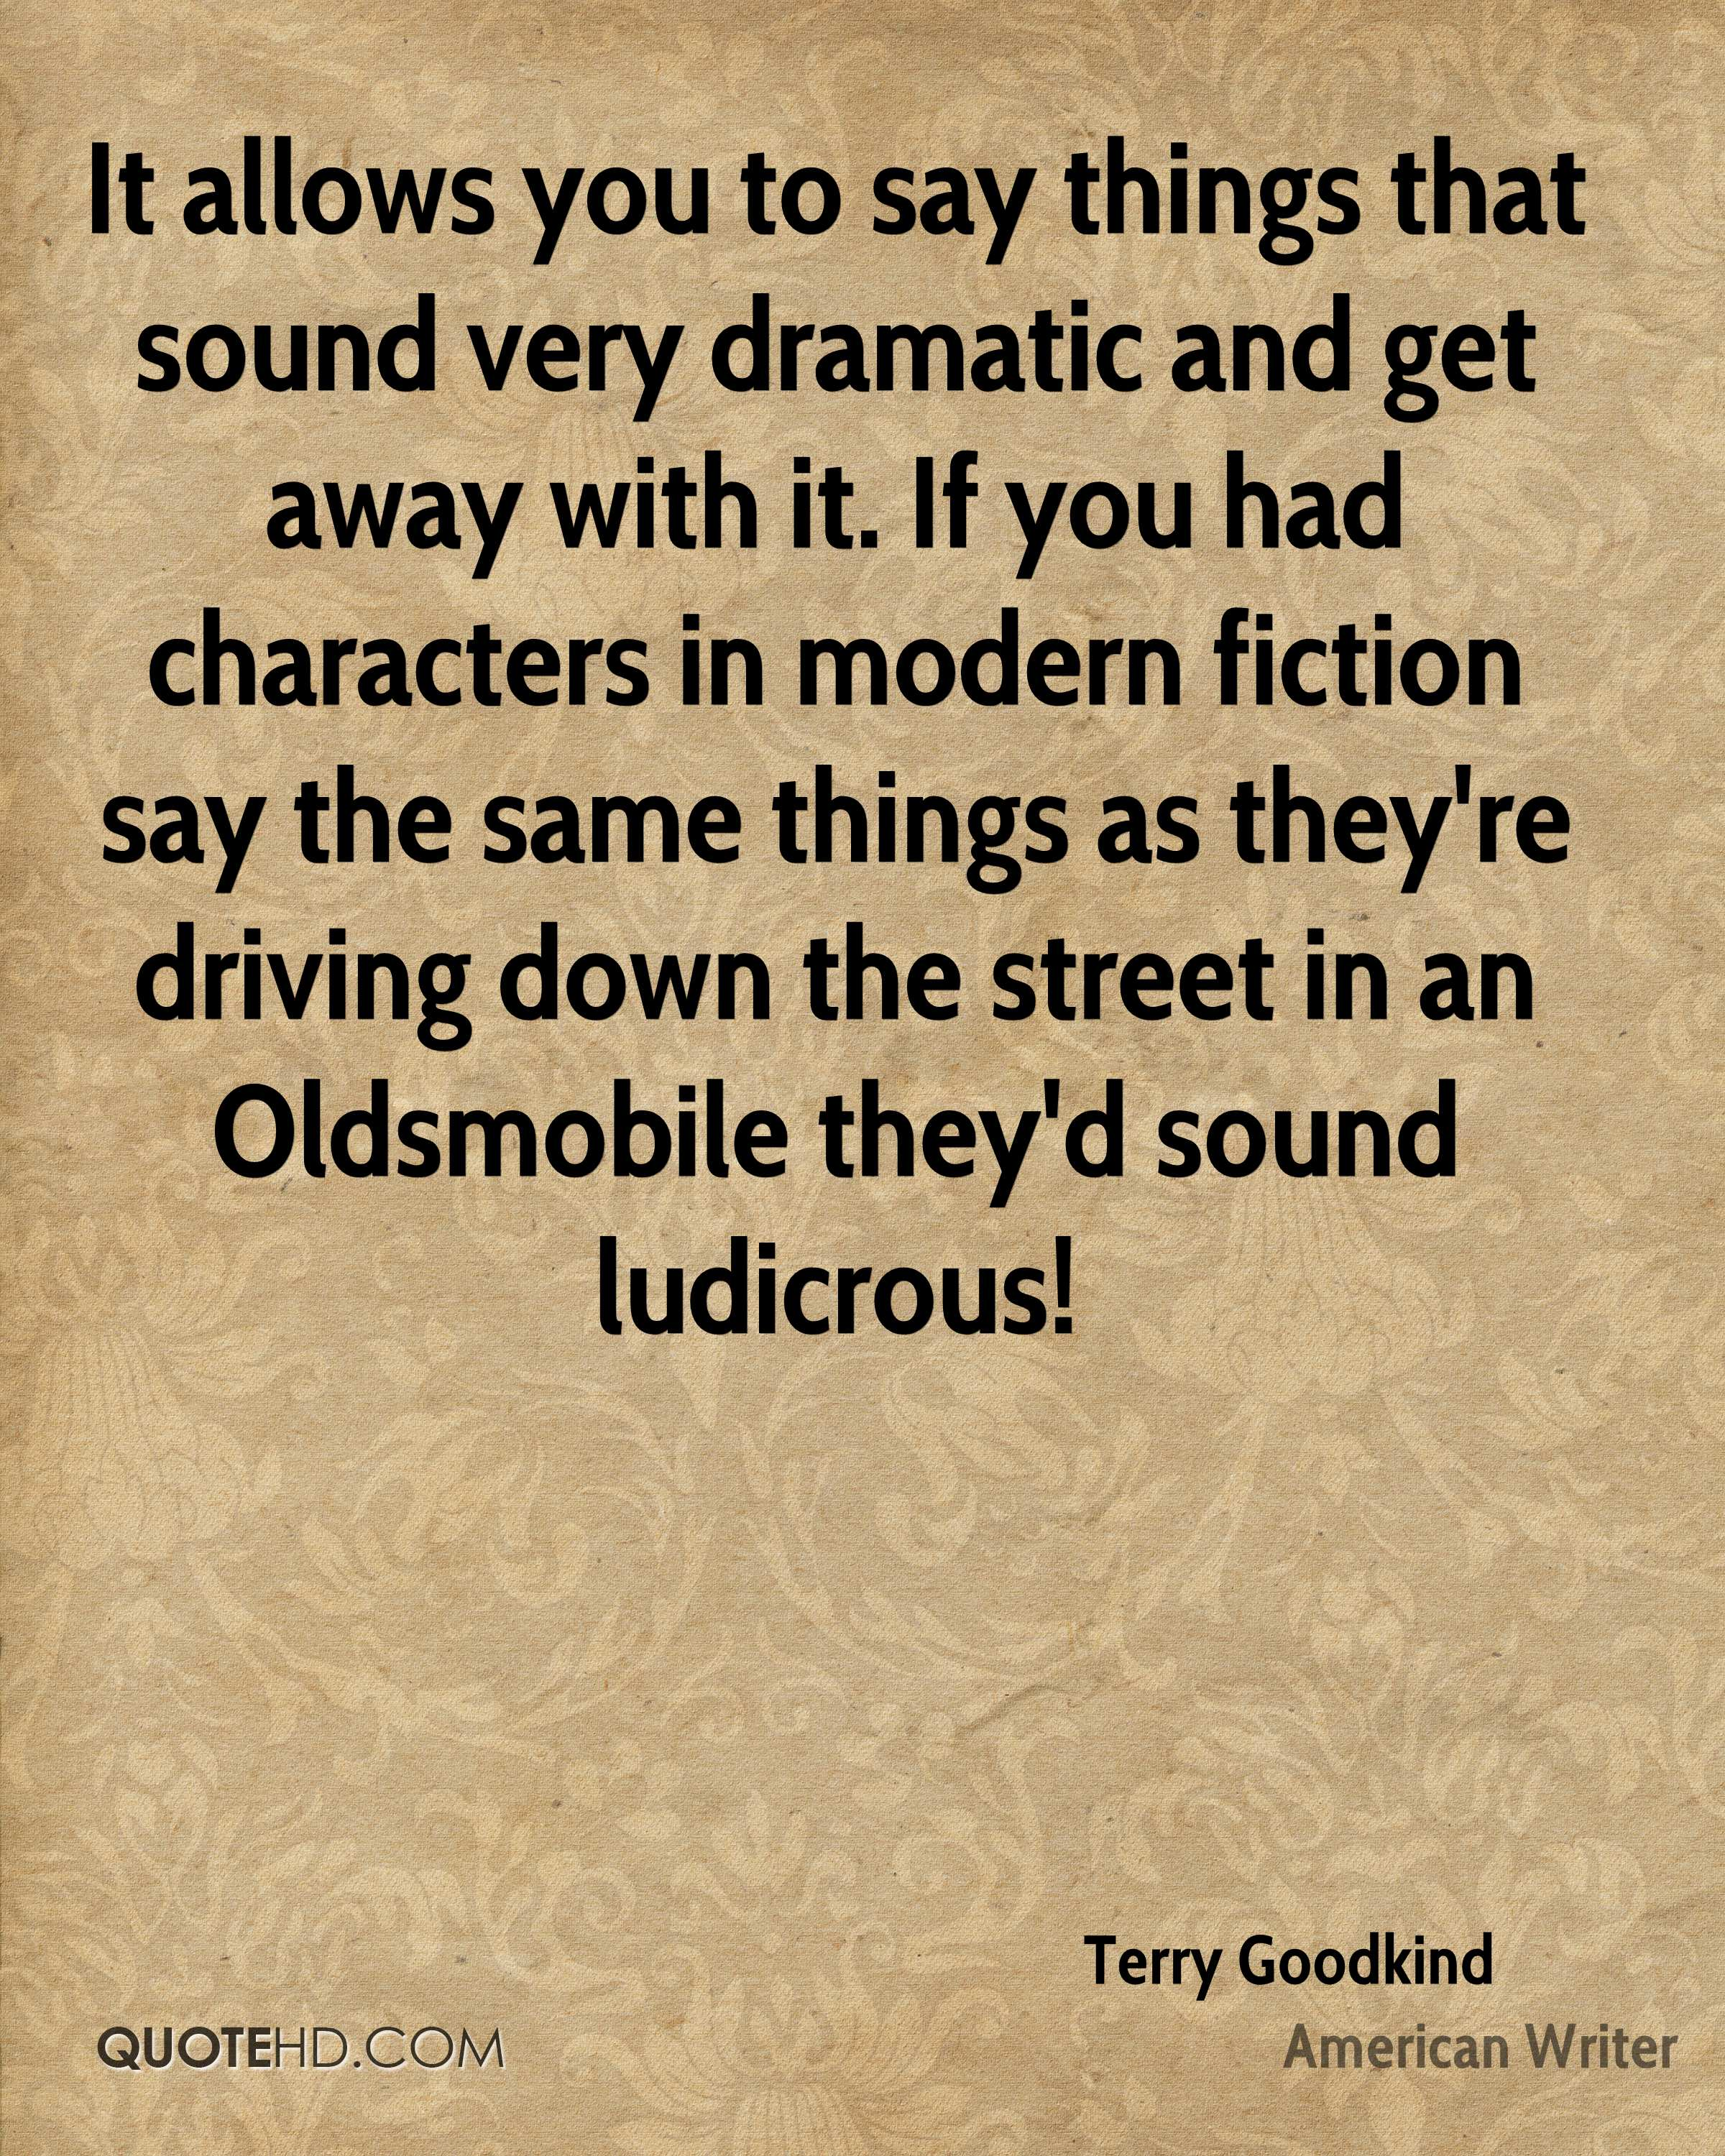 It allows you to say things that sound very dramatic and get away with it. If you had characters in modern fiction say the same things as they're driving down the street in an Oldsmobile they'd sound ludicrous!